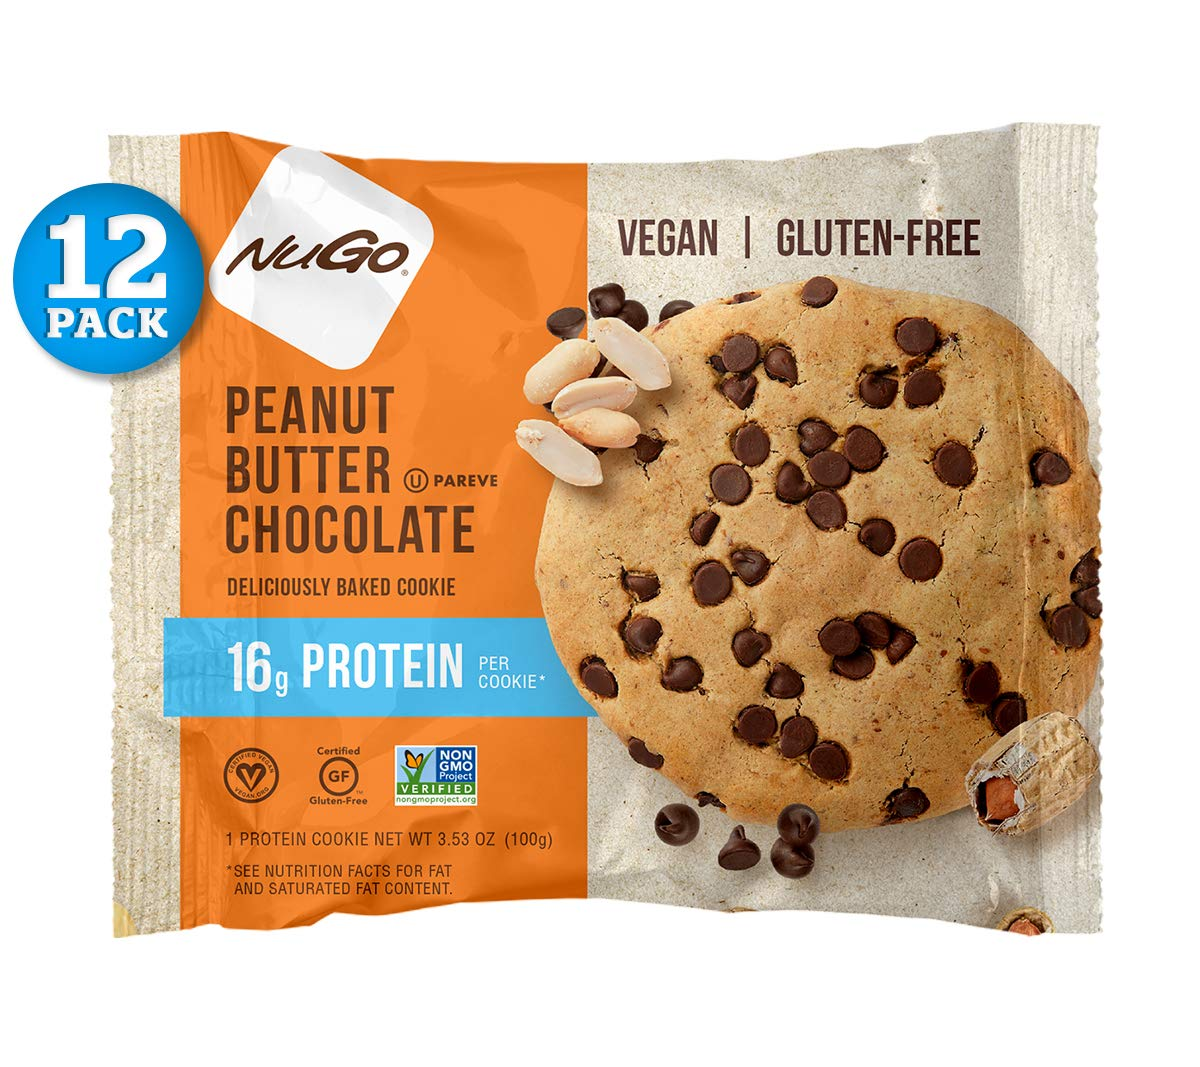 NuGo Protein Cookie, Peanut Butter Chocolate, 16g Vegan Protein, Gluten Free, Soy Free, 12 Count by NuGo